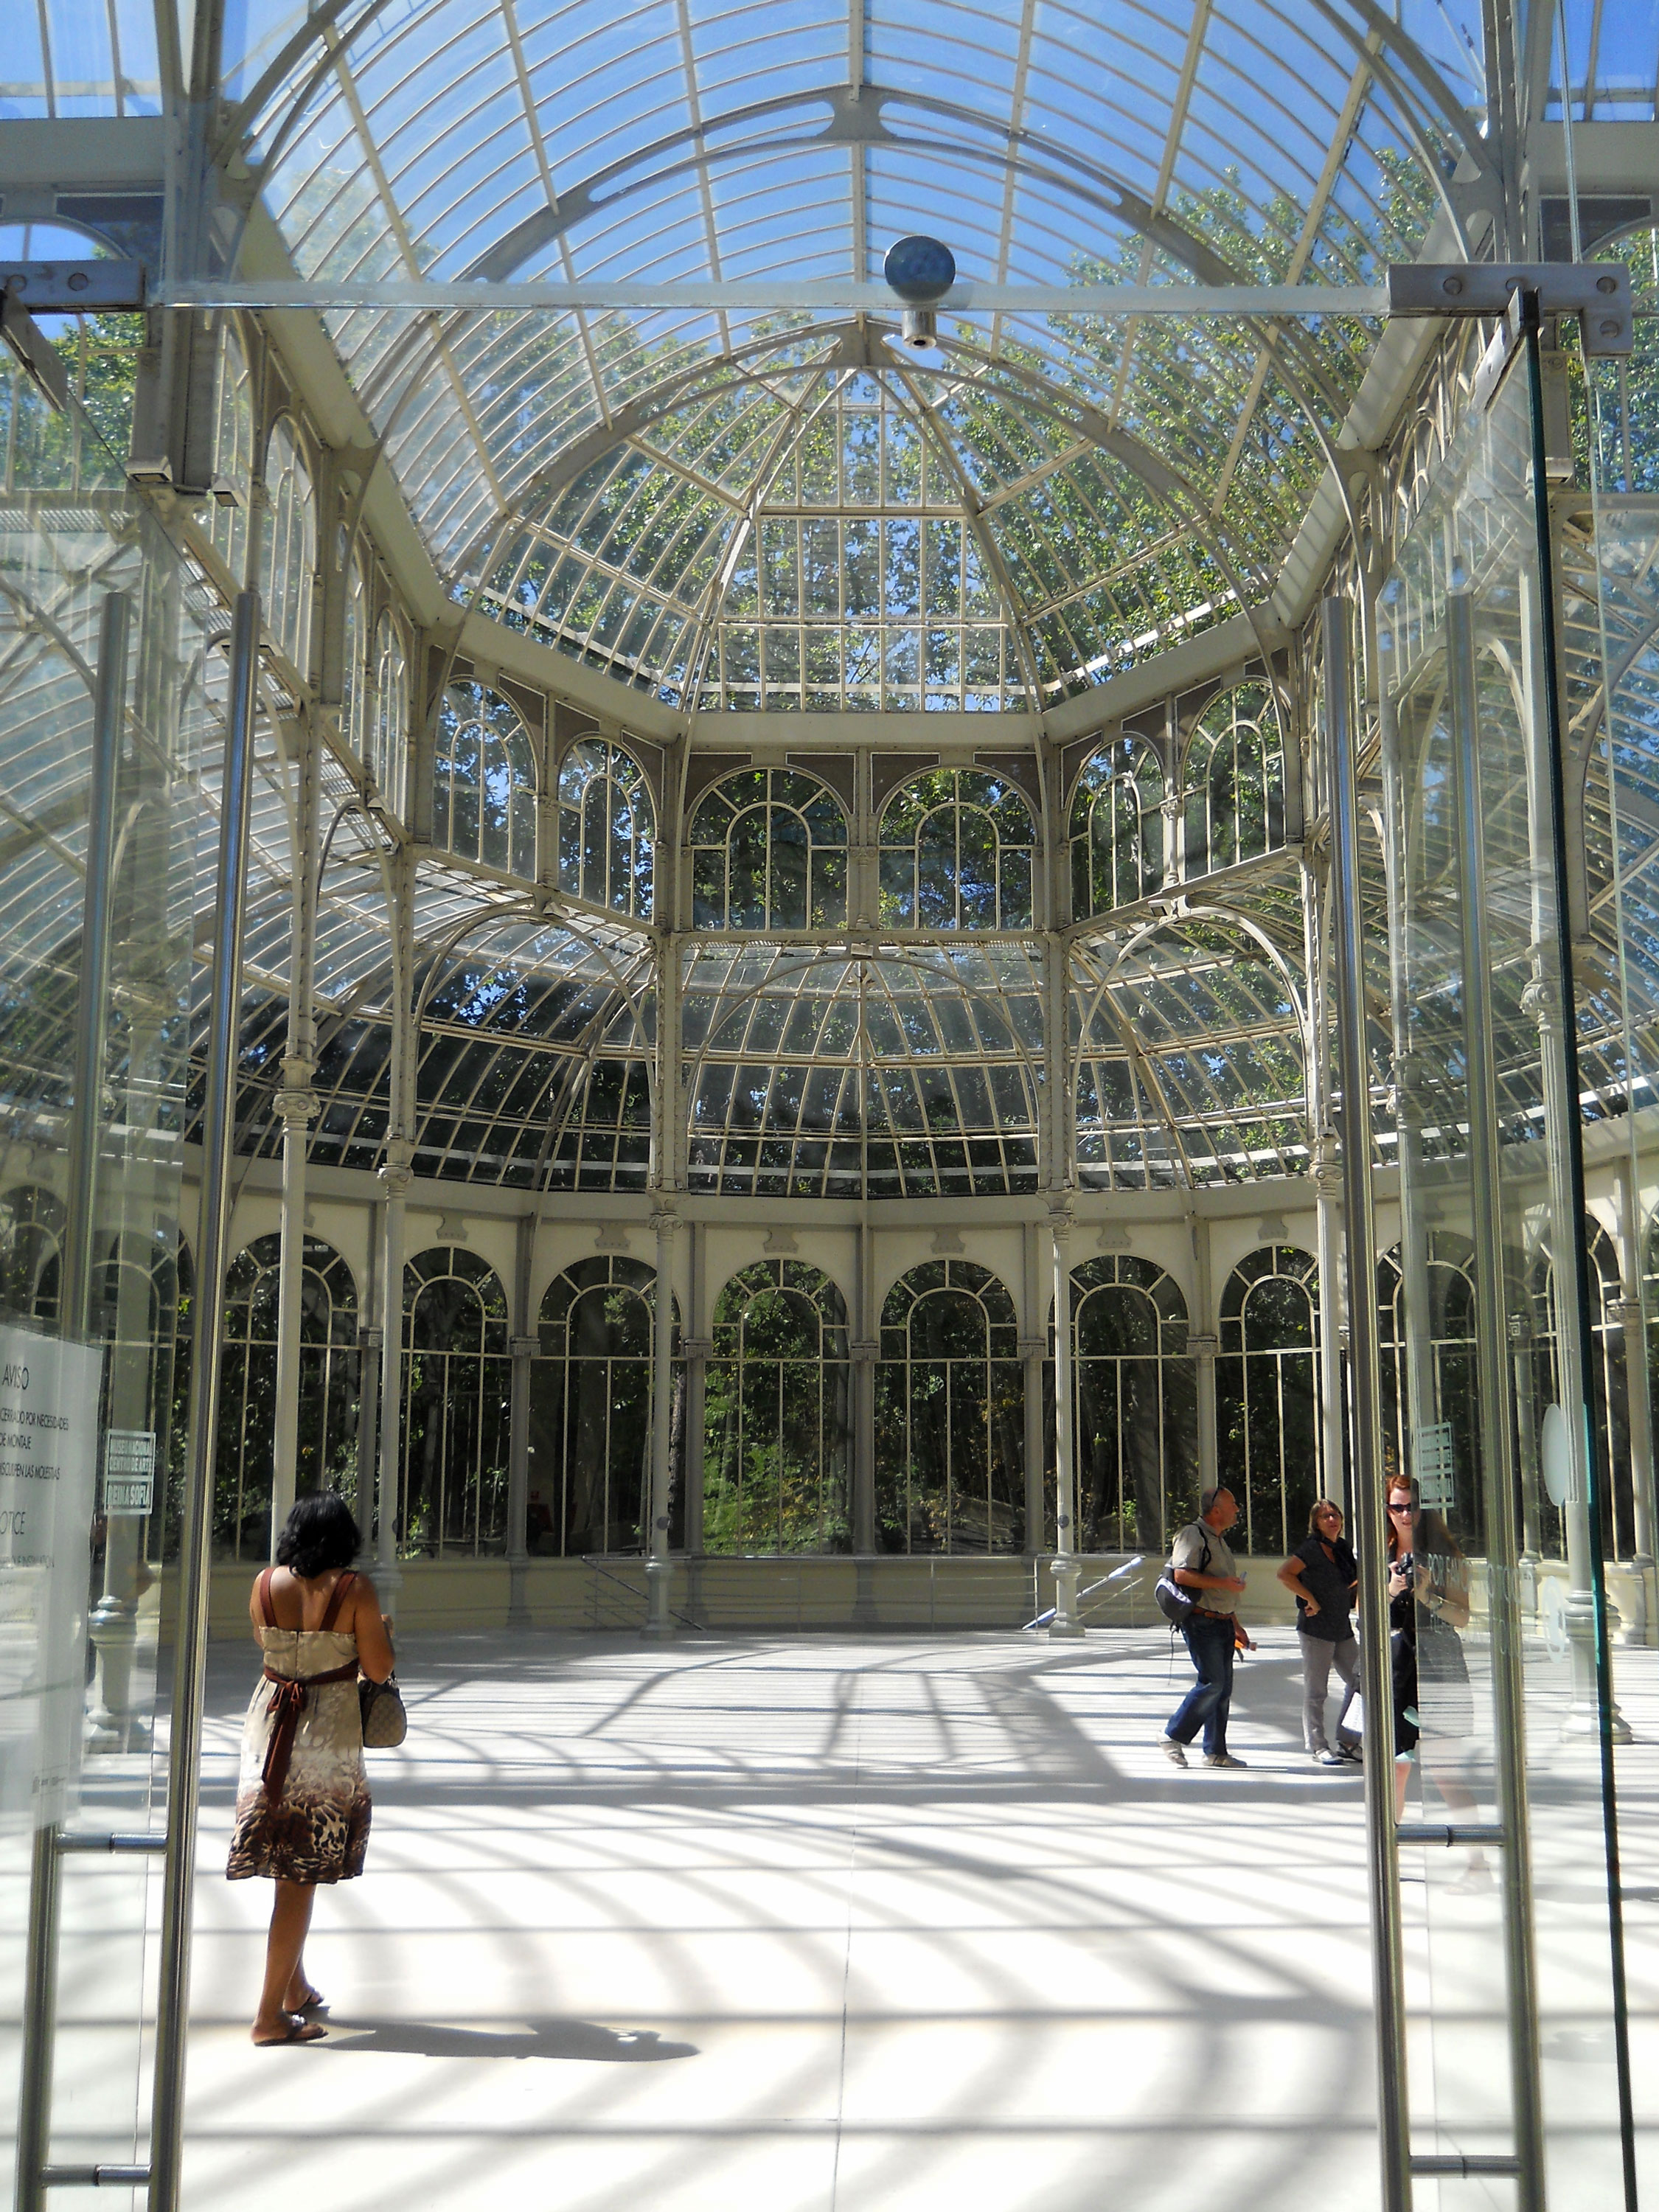 Inside the Cristal Palace. Honestly, I would have loved to see this in the London rain. Could you imagine the music it would make in rain?